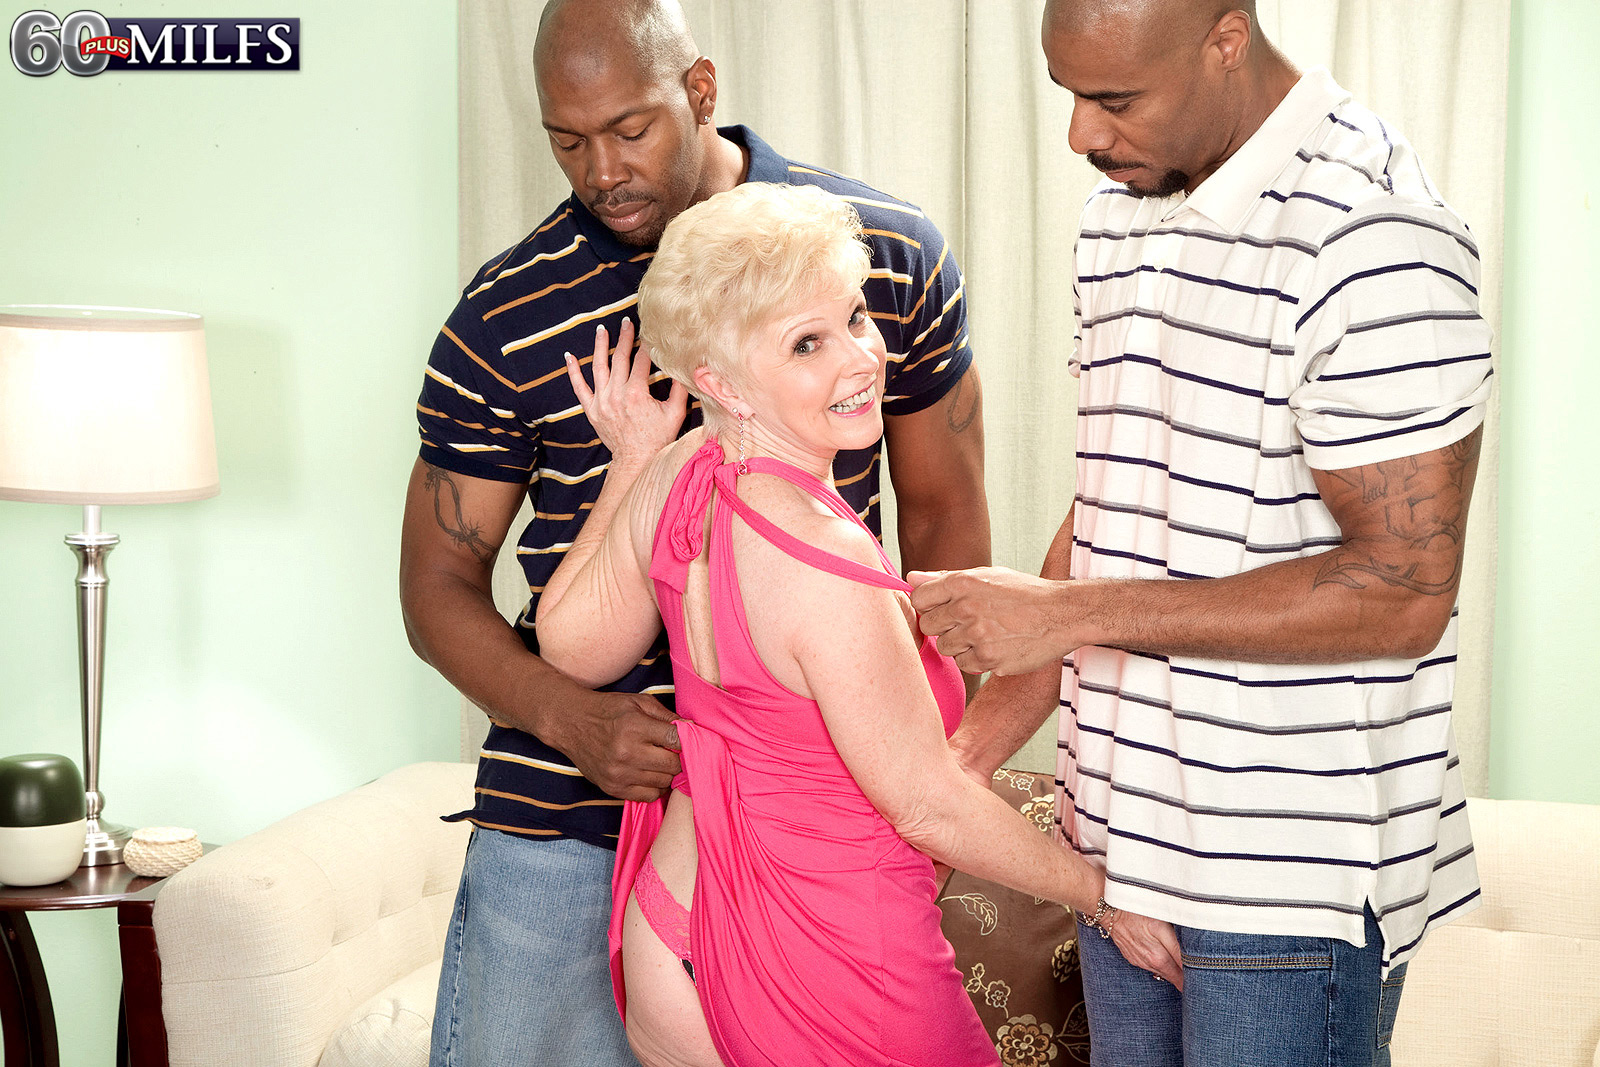 Spit roasted wife 2010 - 3 9